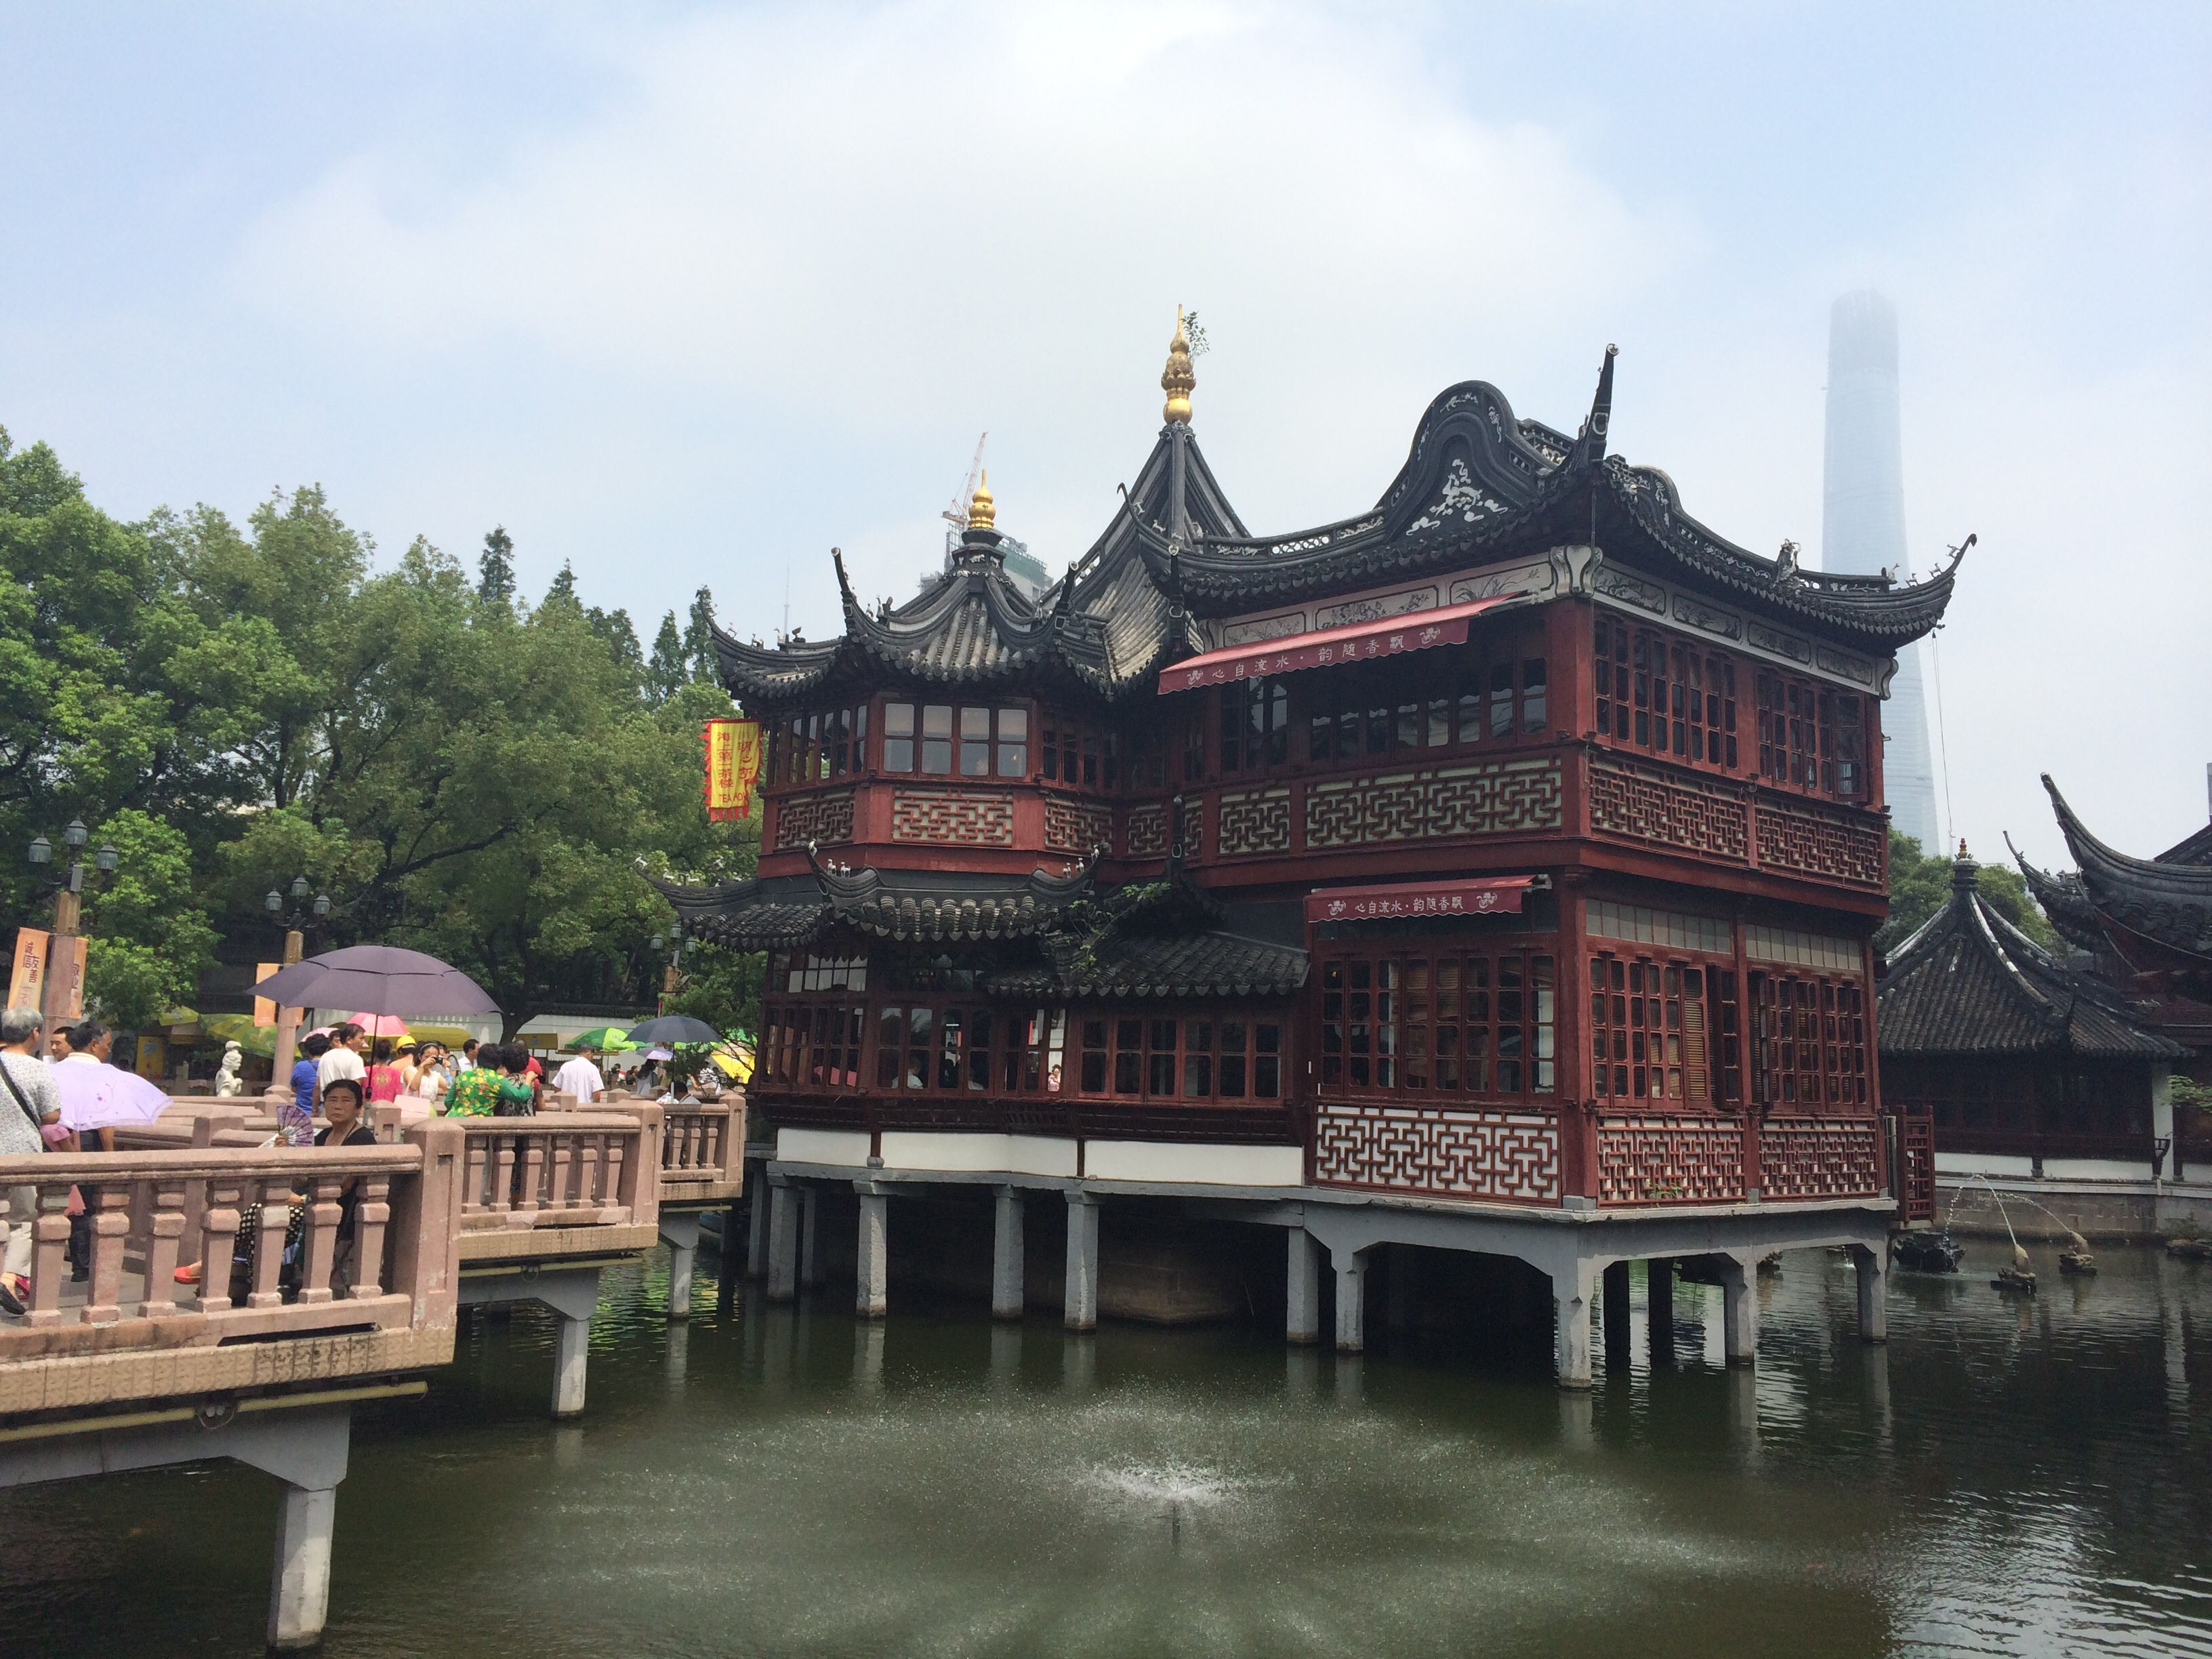 Tea house in Yuyuan in Shanghai. August 2014.